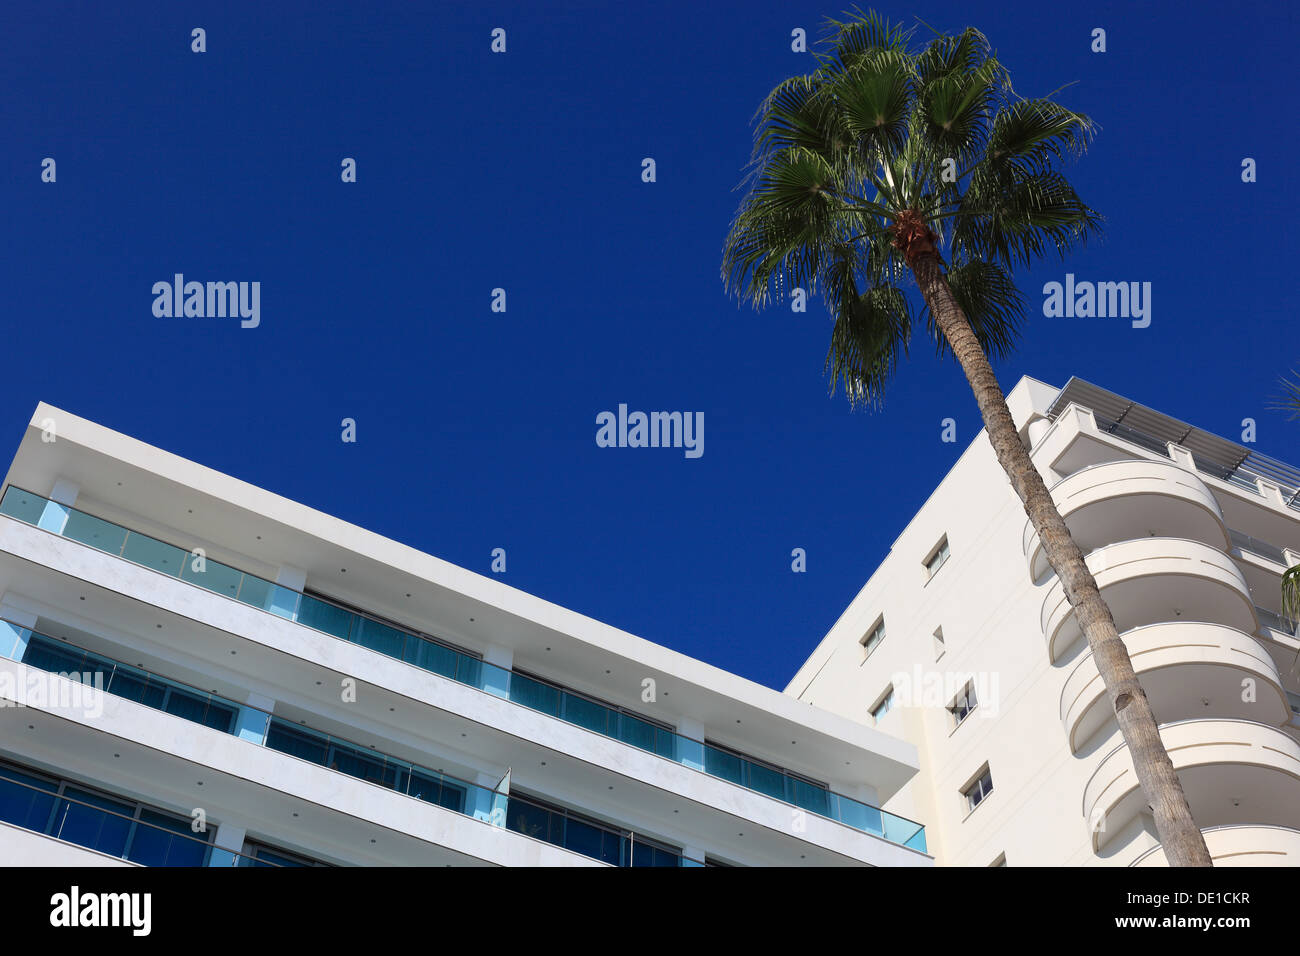 Cyprus, Larnaca, hotel, residential buildings, palm trees - Stock Image